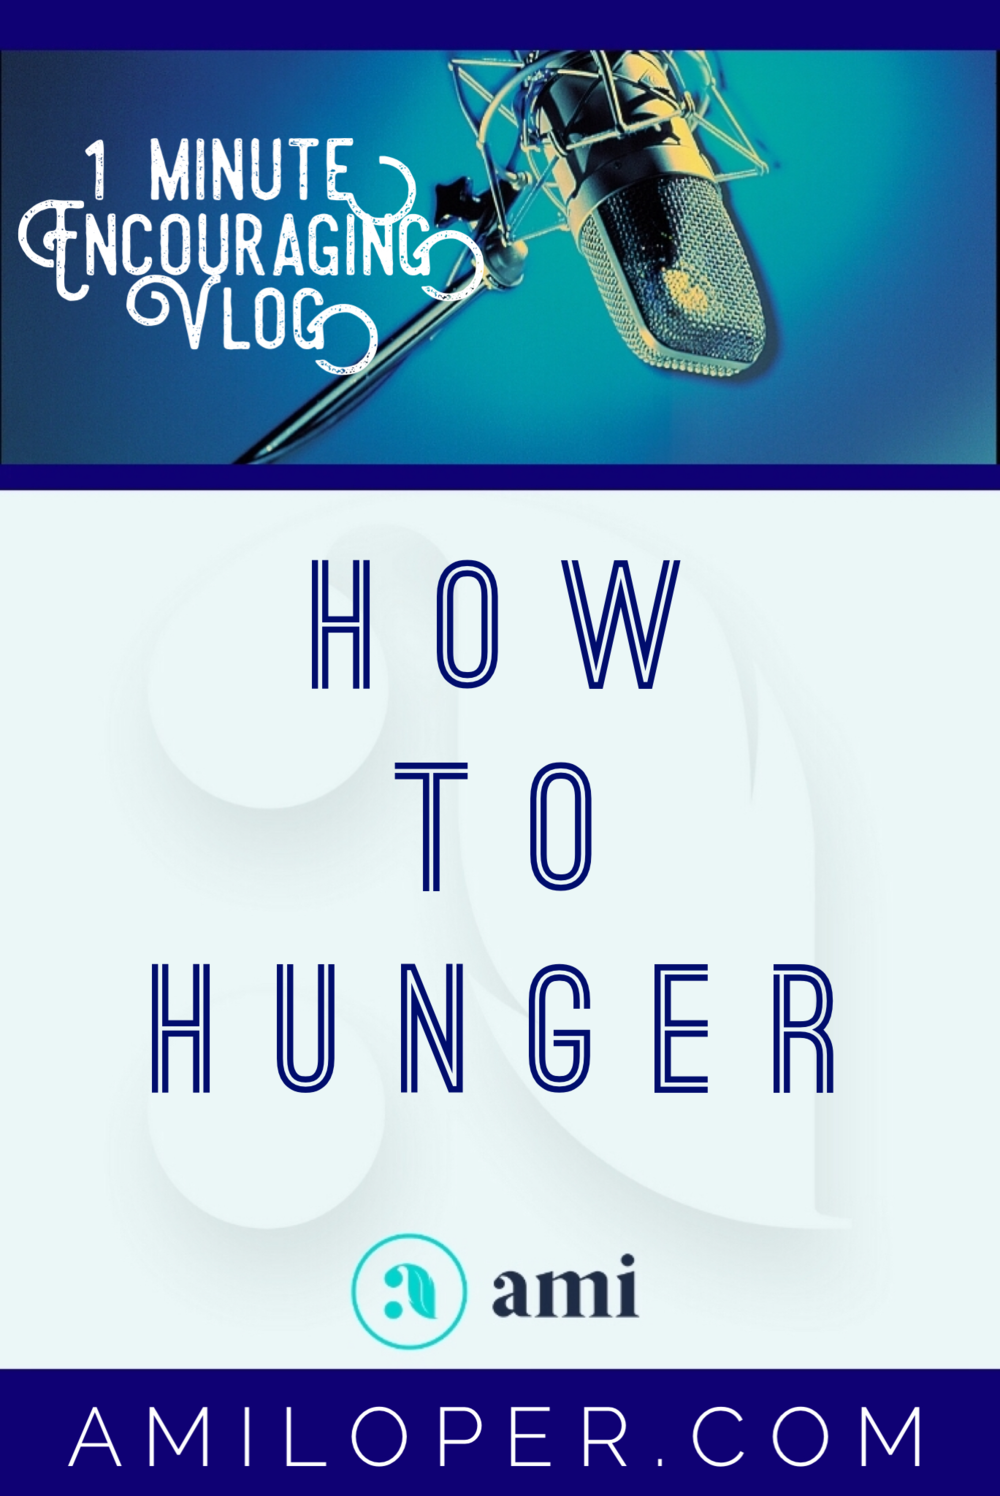 Are we hungry enough? When we begin to feel hunger pangs in our heart, is it our cue to look for anything to alleviate the hunger or is it our cue to stir ourselves into an even deeper hunger that insists on true spiritual food? #TrustingGod #Vlog